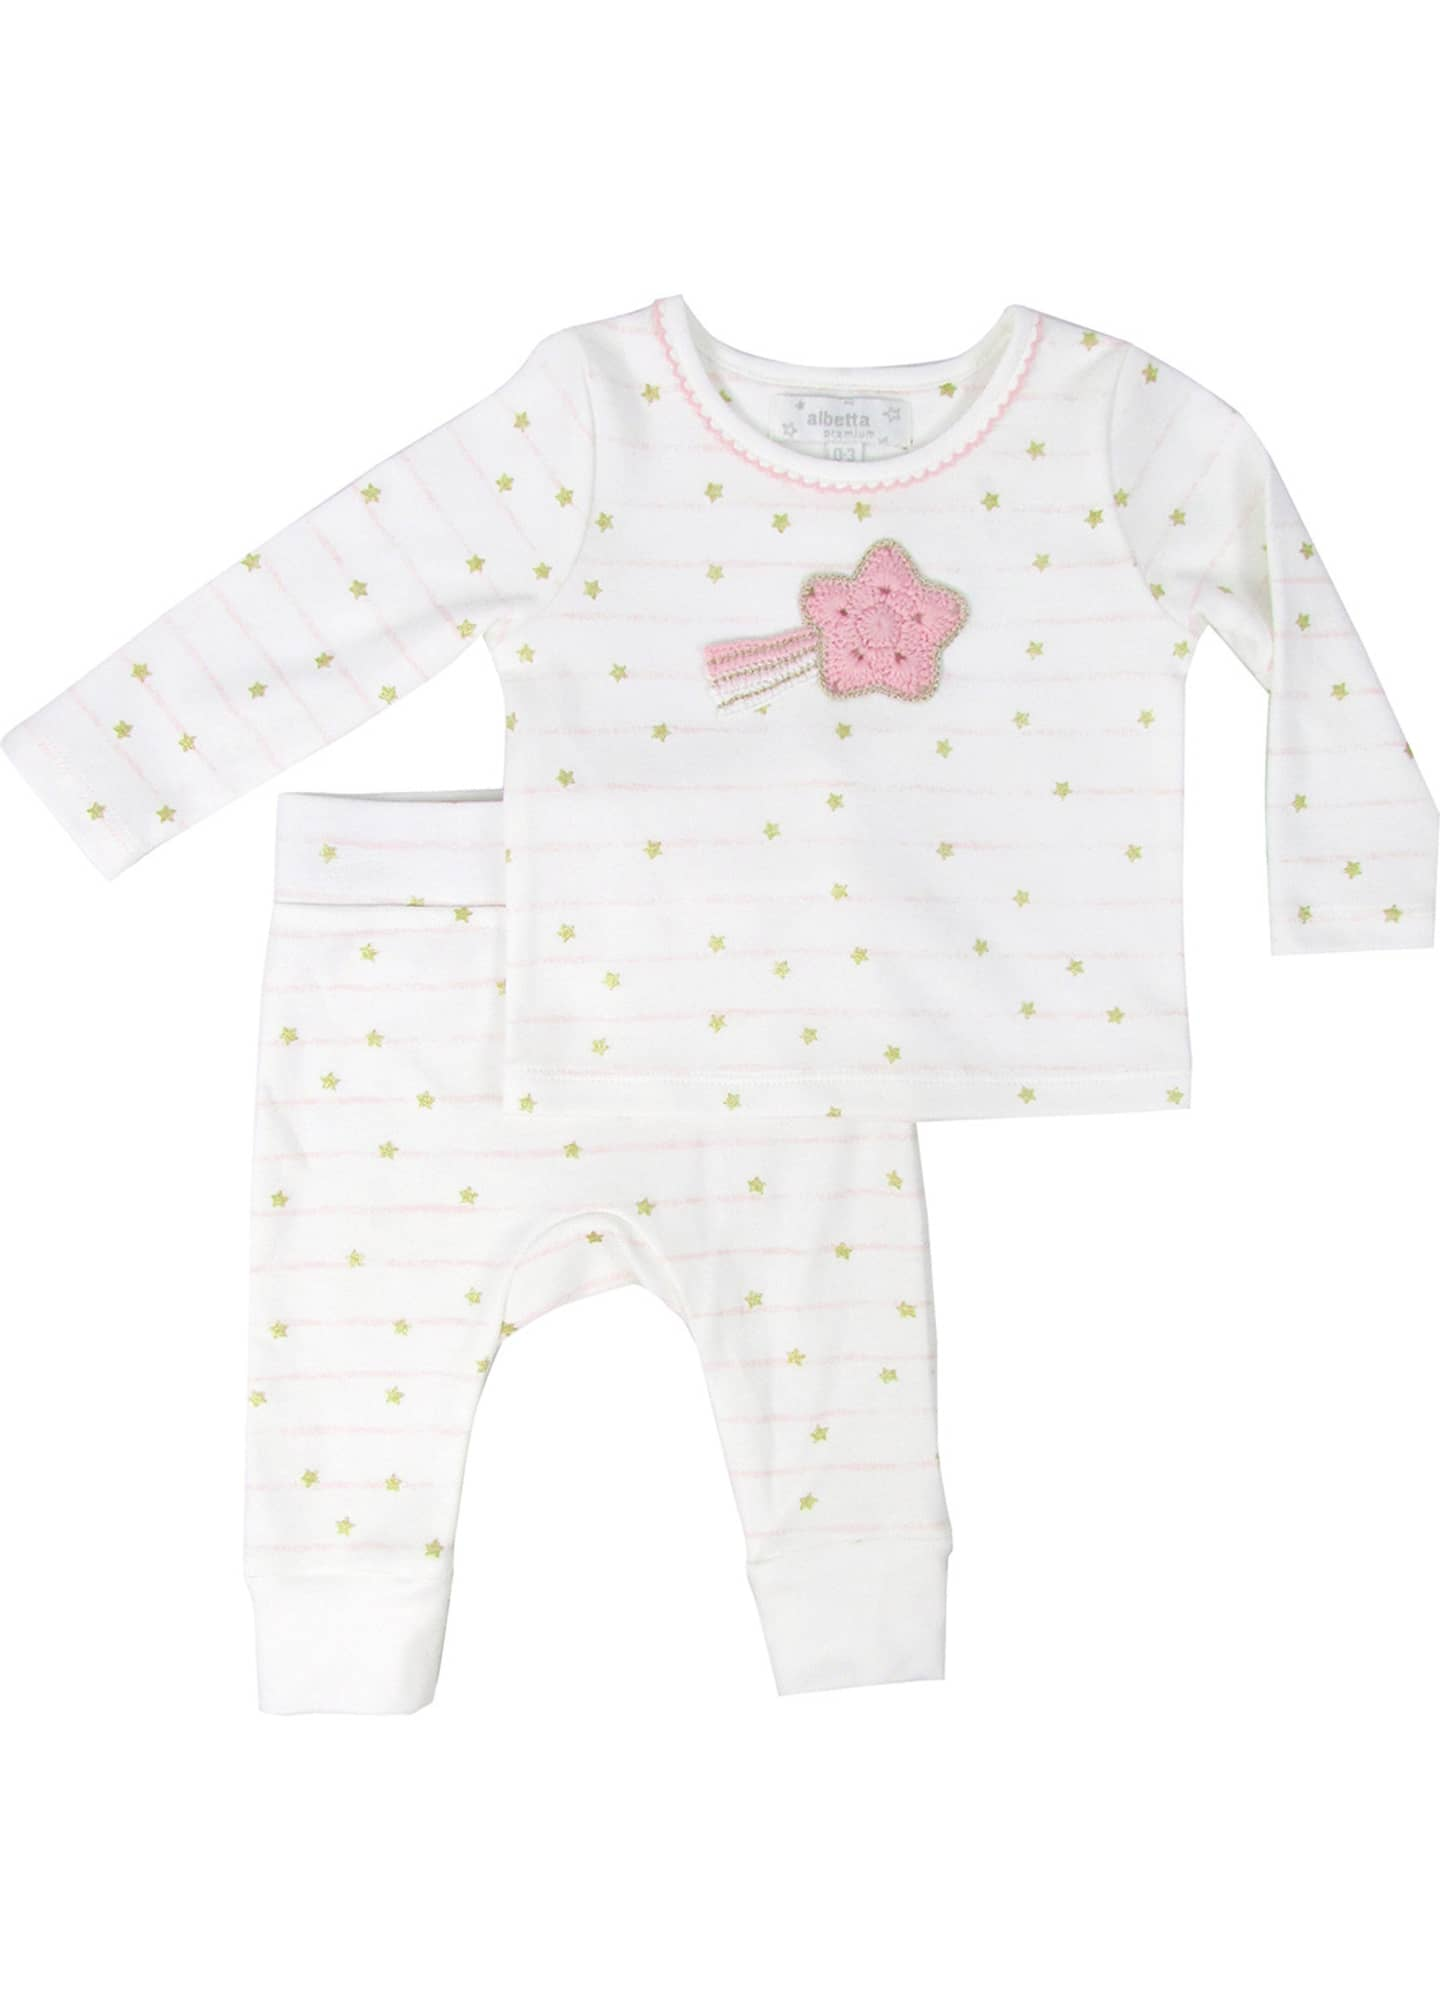 Image 1 of 1: Kid's Stripe Stars Print Long-Sleeve Top w/ Matching Pants, Size 12-36 Months